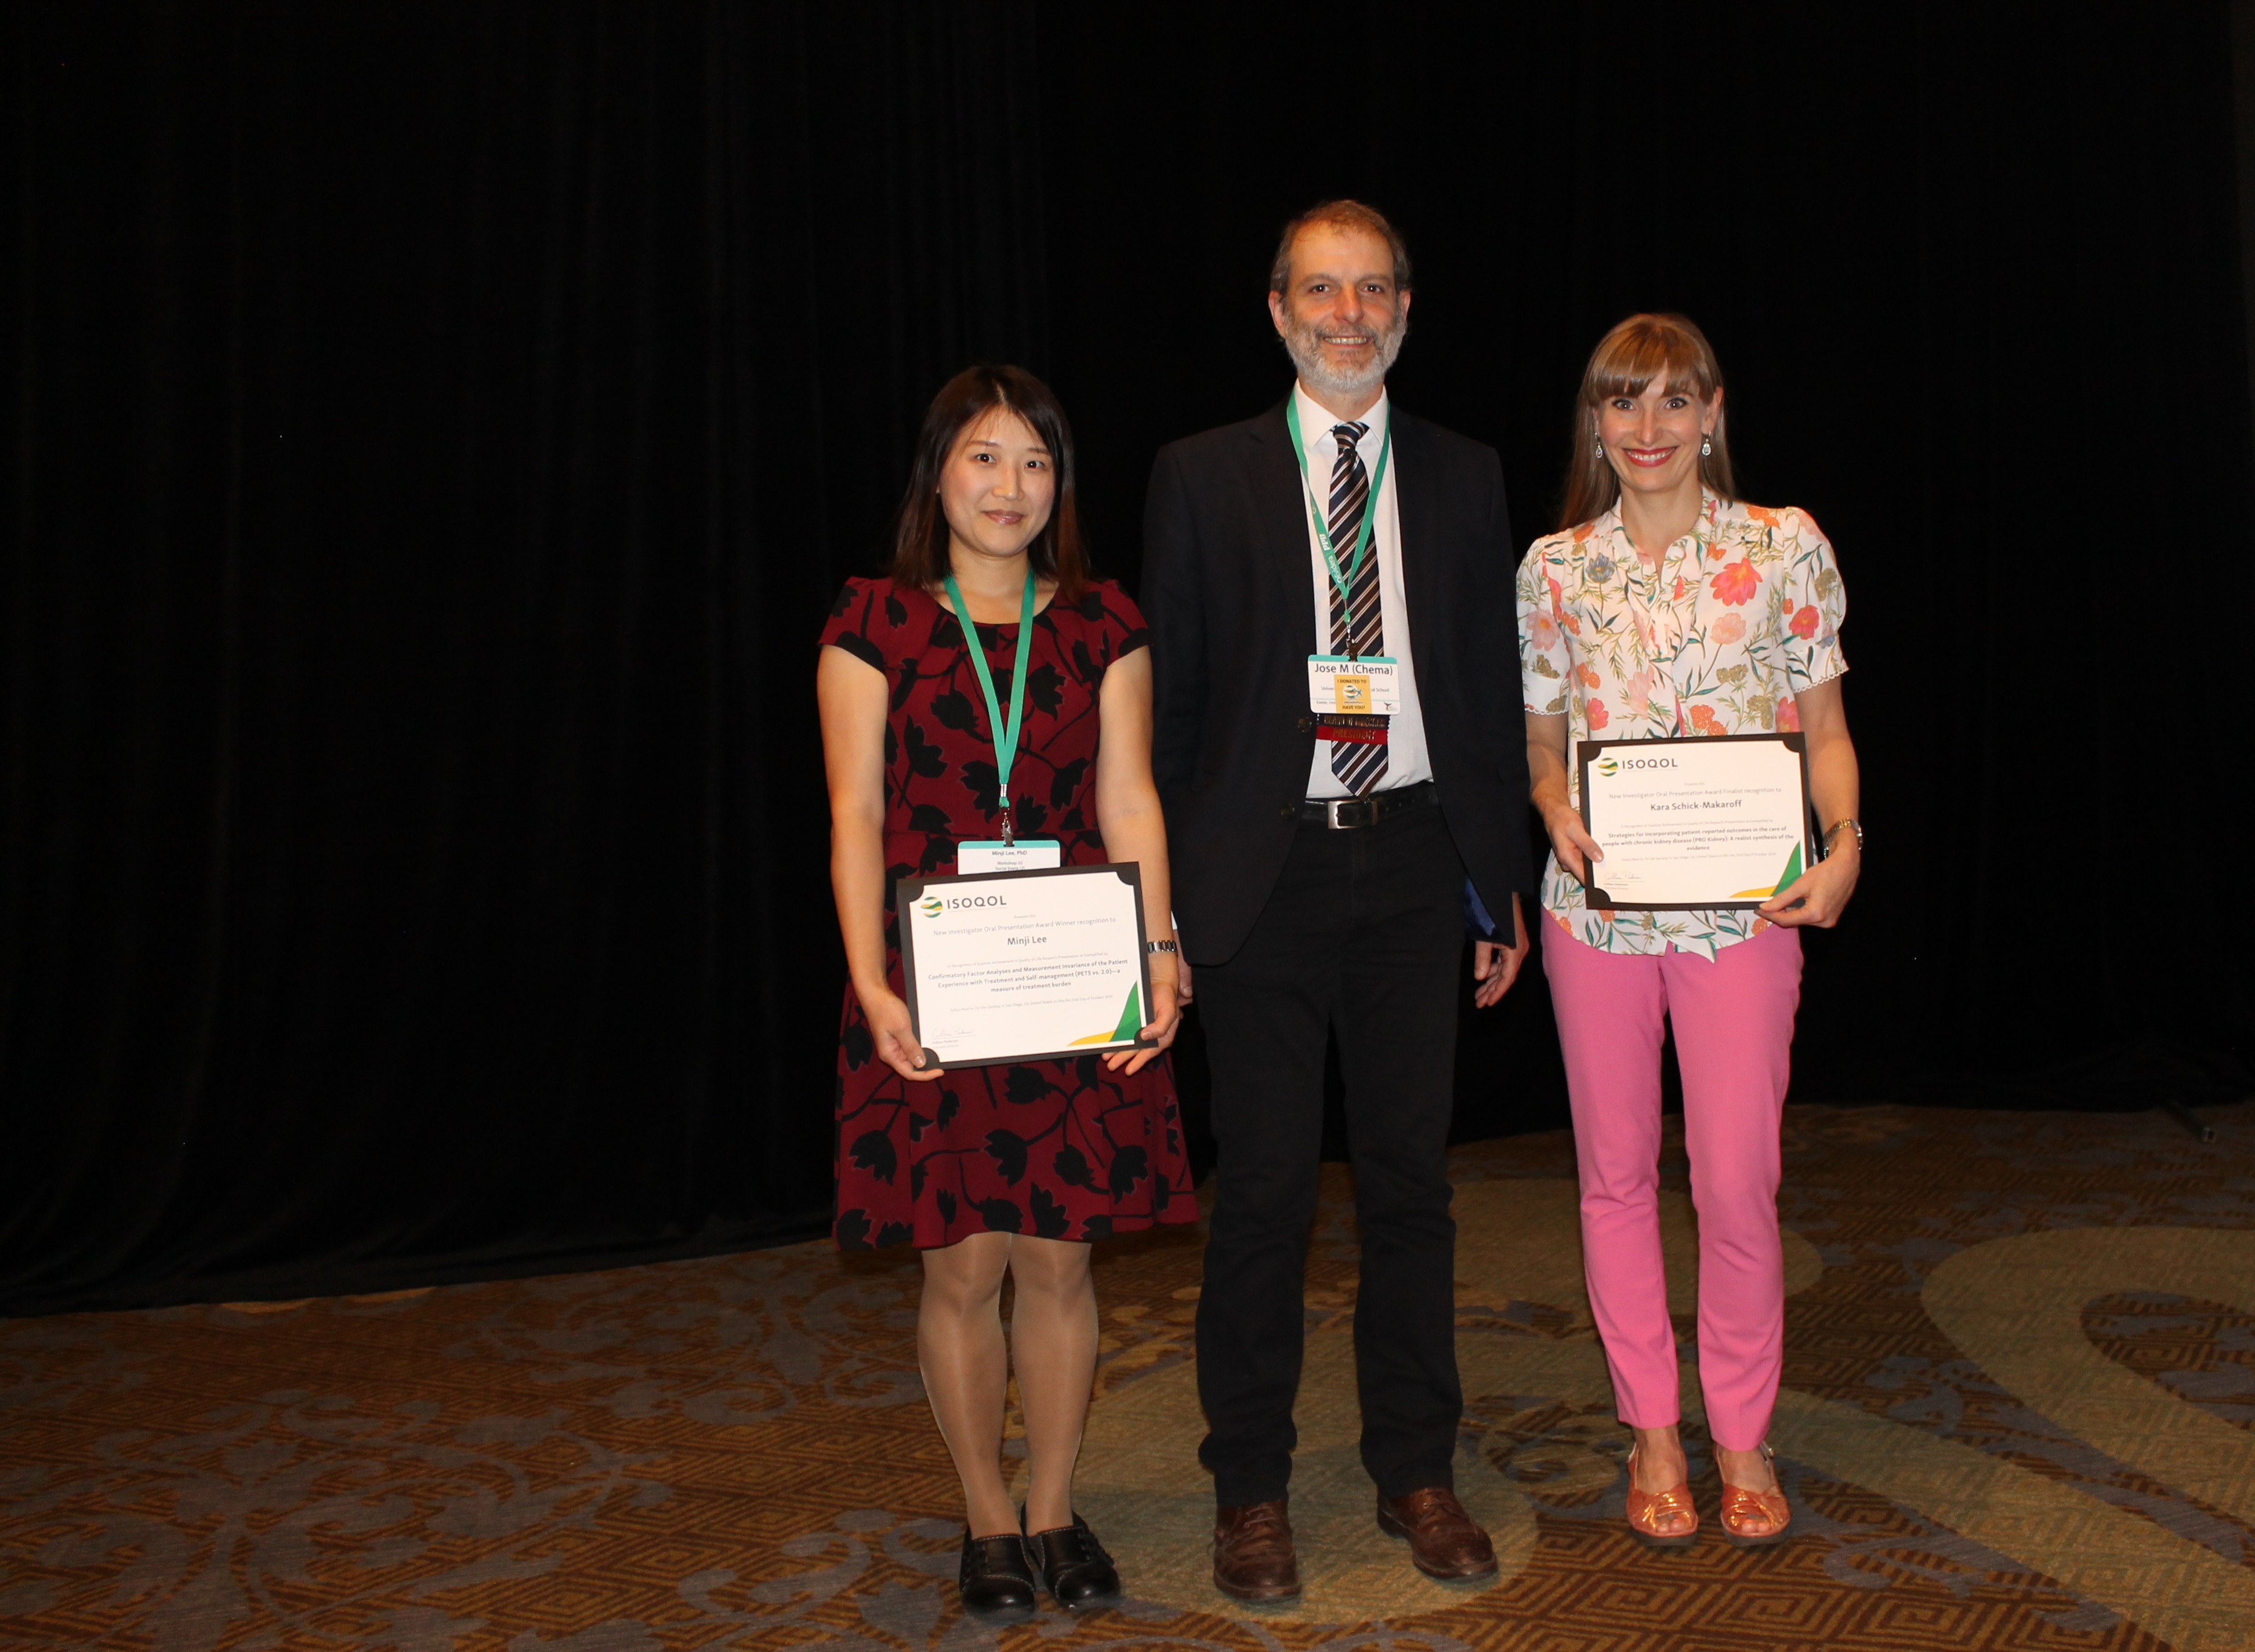 Awards Presented at the ISOQOL 2019 Annual Conference